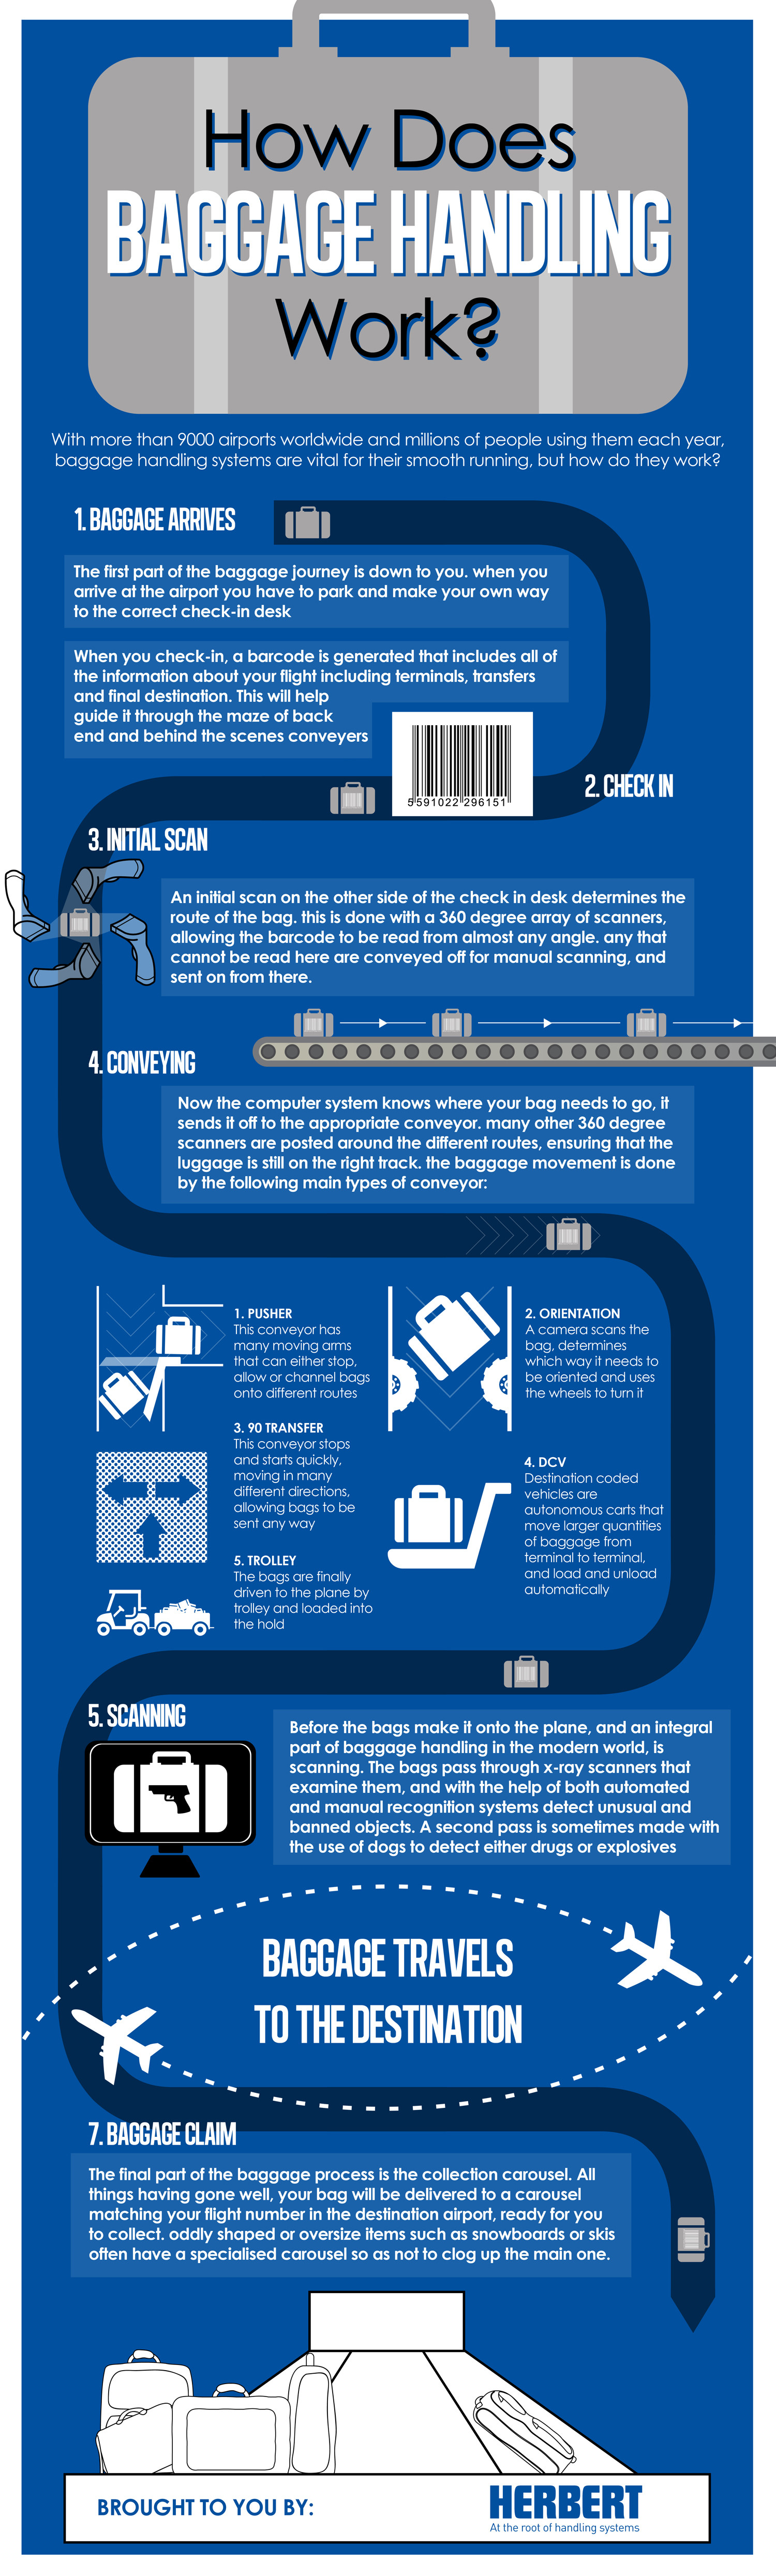 How Does Baggage Handling Work? Infographic